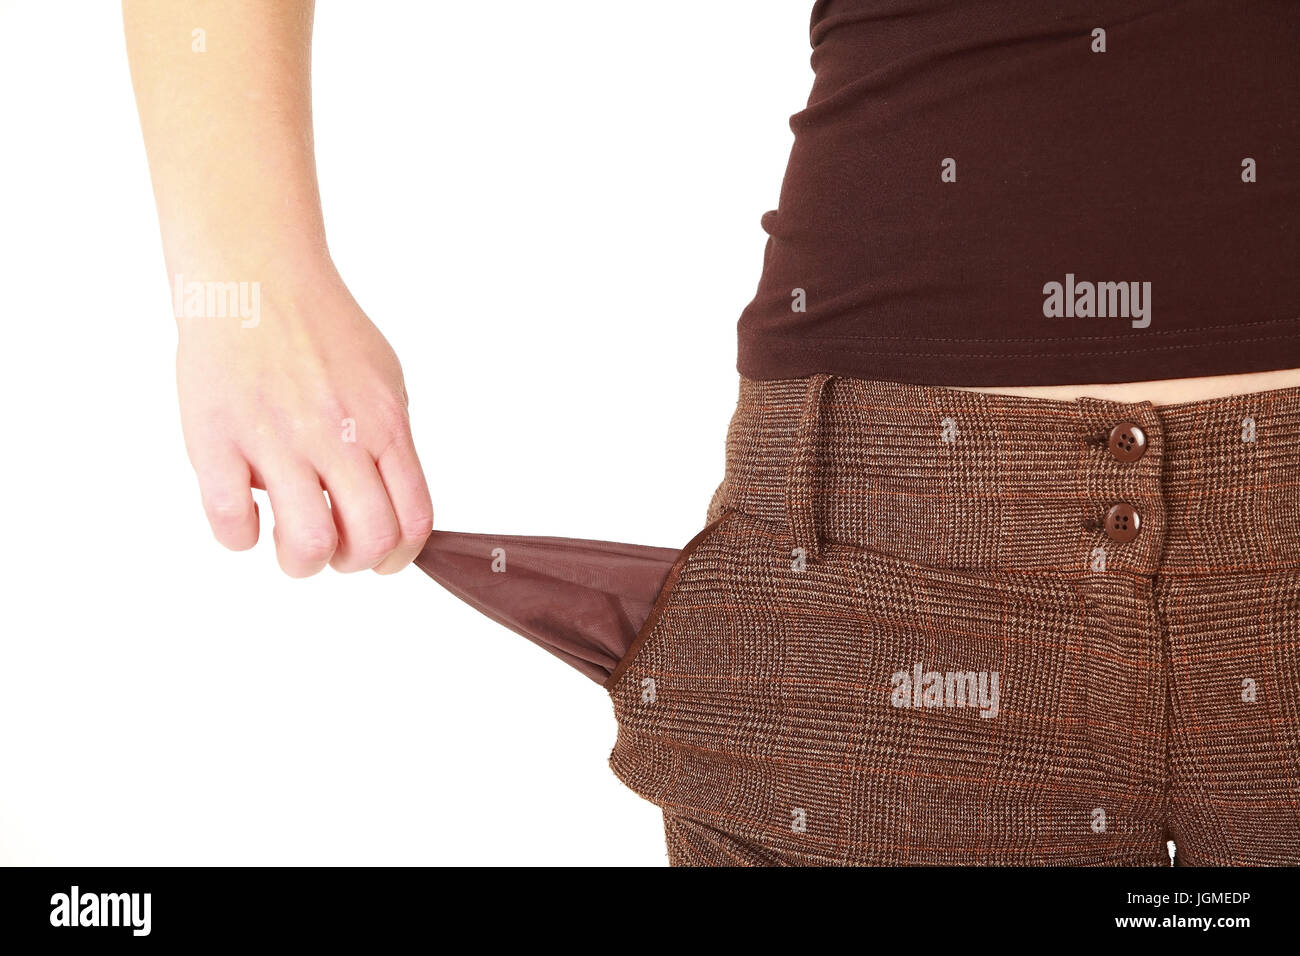 empty pockets, private insolvency - empty pockets, leere Taschen, Privatinsolvenz - empty pockets - Stock Image